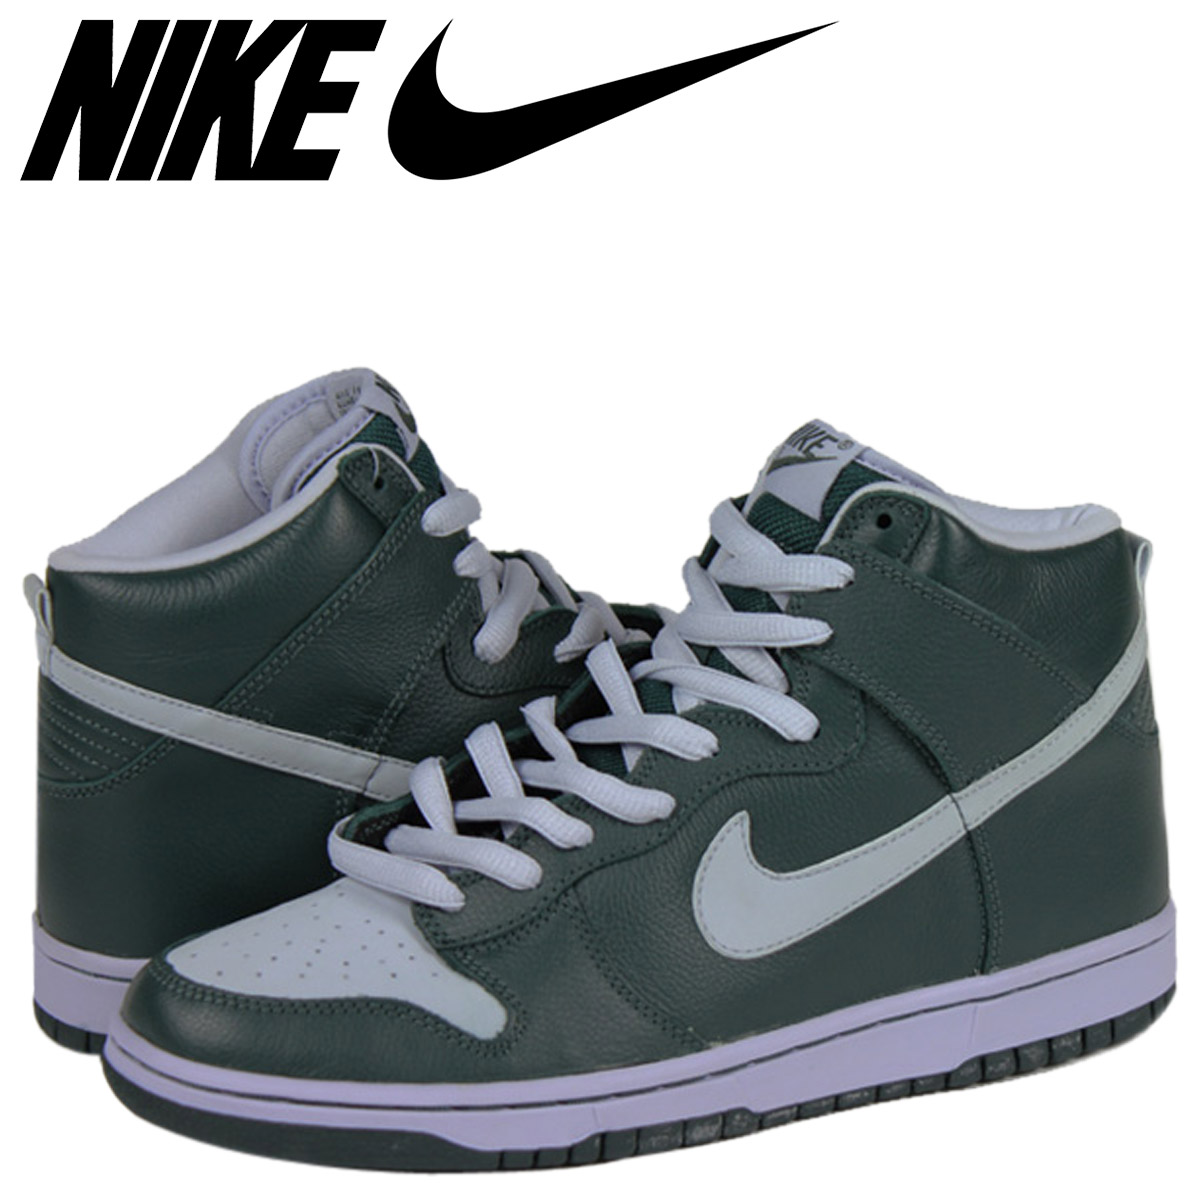 new concept 603ea 0baa5 Whats up Sports NIKE Nike dunk sneakers DUNK HIGH PRO SB GHOST dunk high  professional S B ghost 305,050-302 green men  Rakuten Global Market